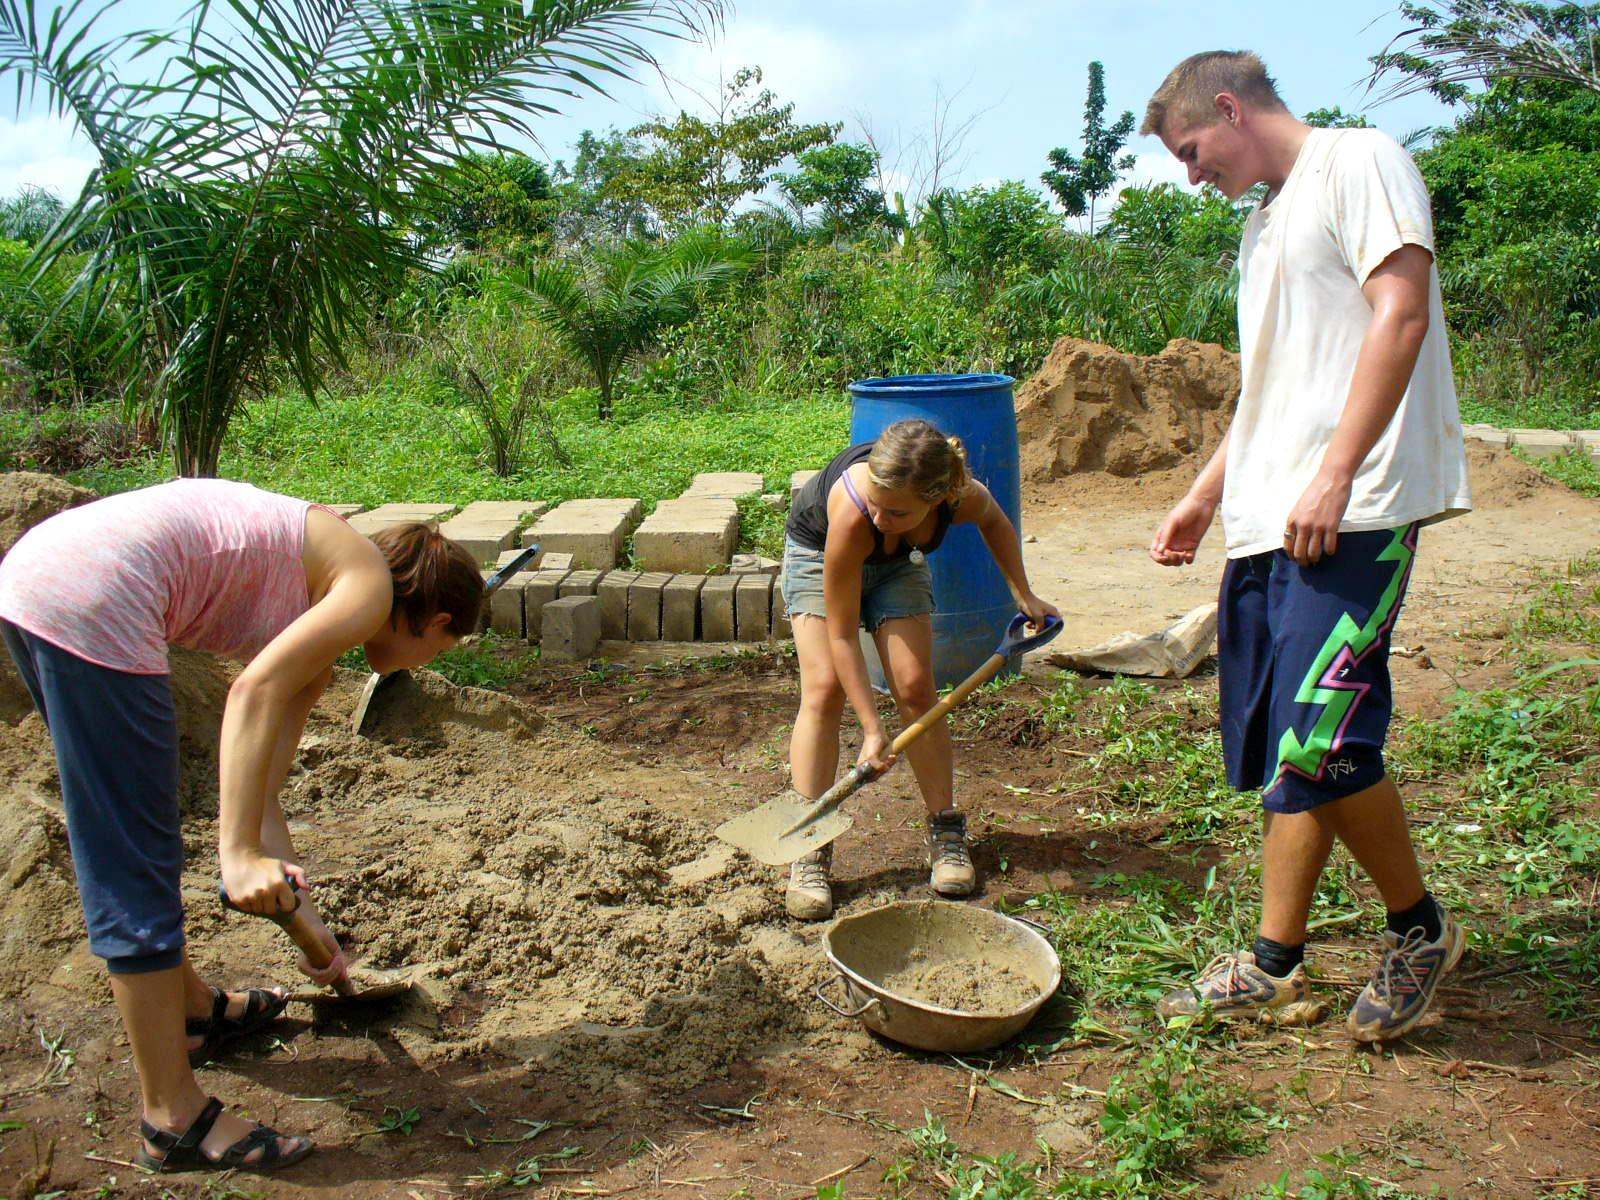 Projects Abroad volunteers can be seen participating in preparing the building site during their building volunteer work in Ghana.